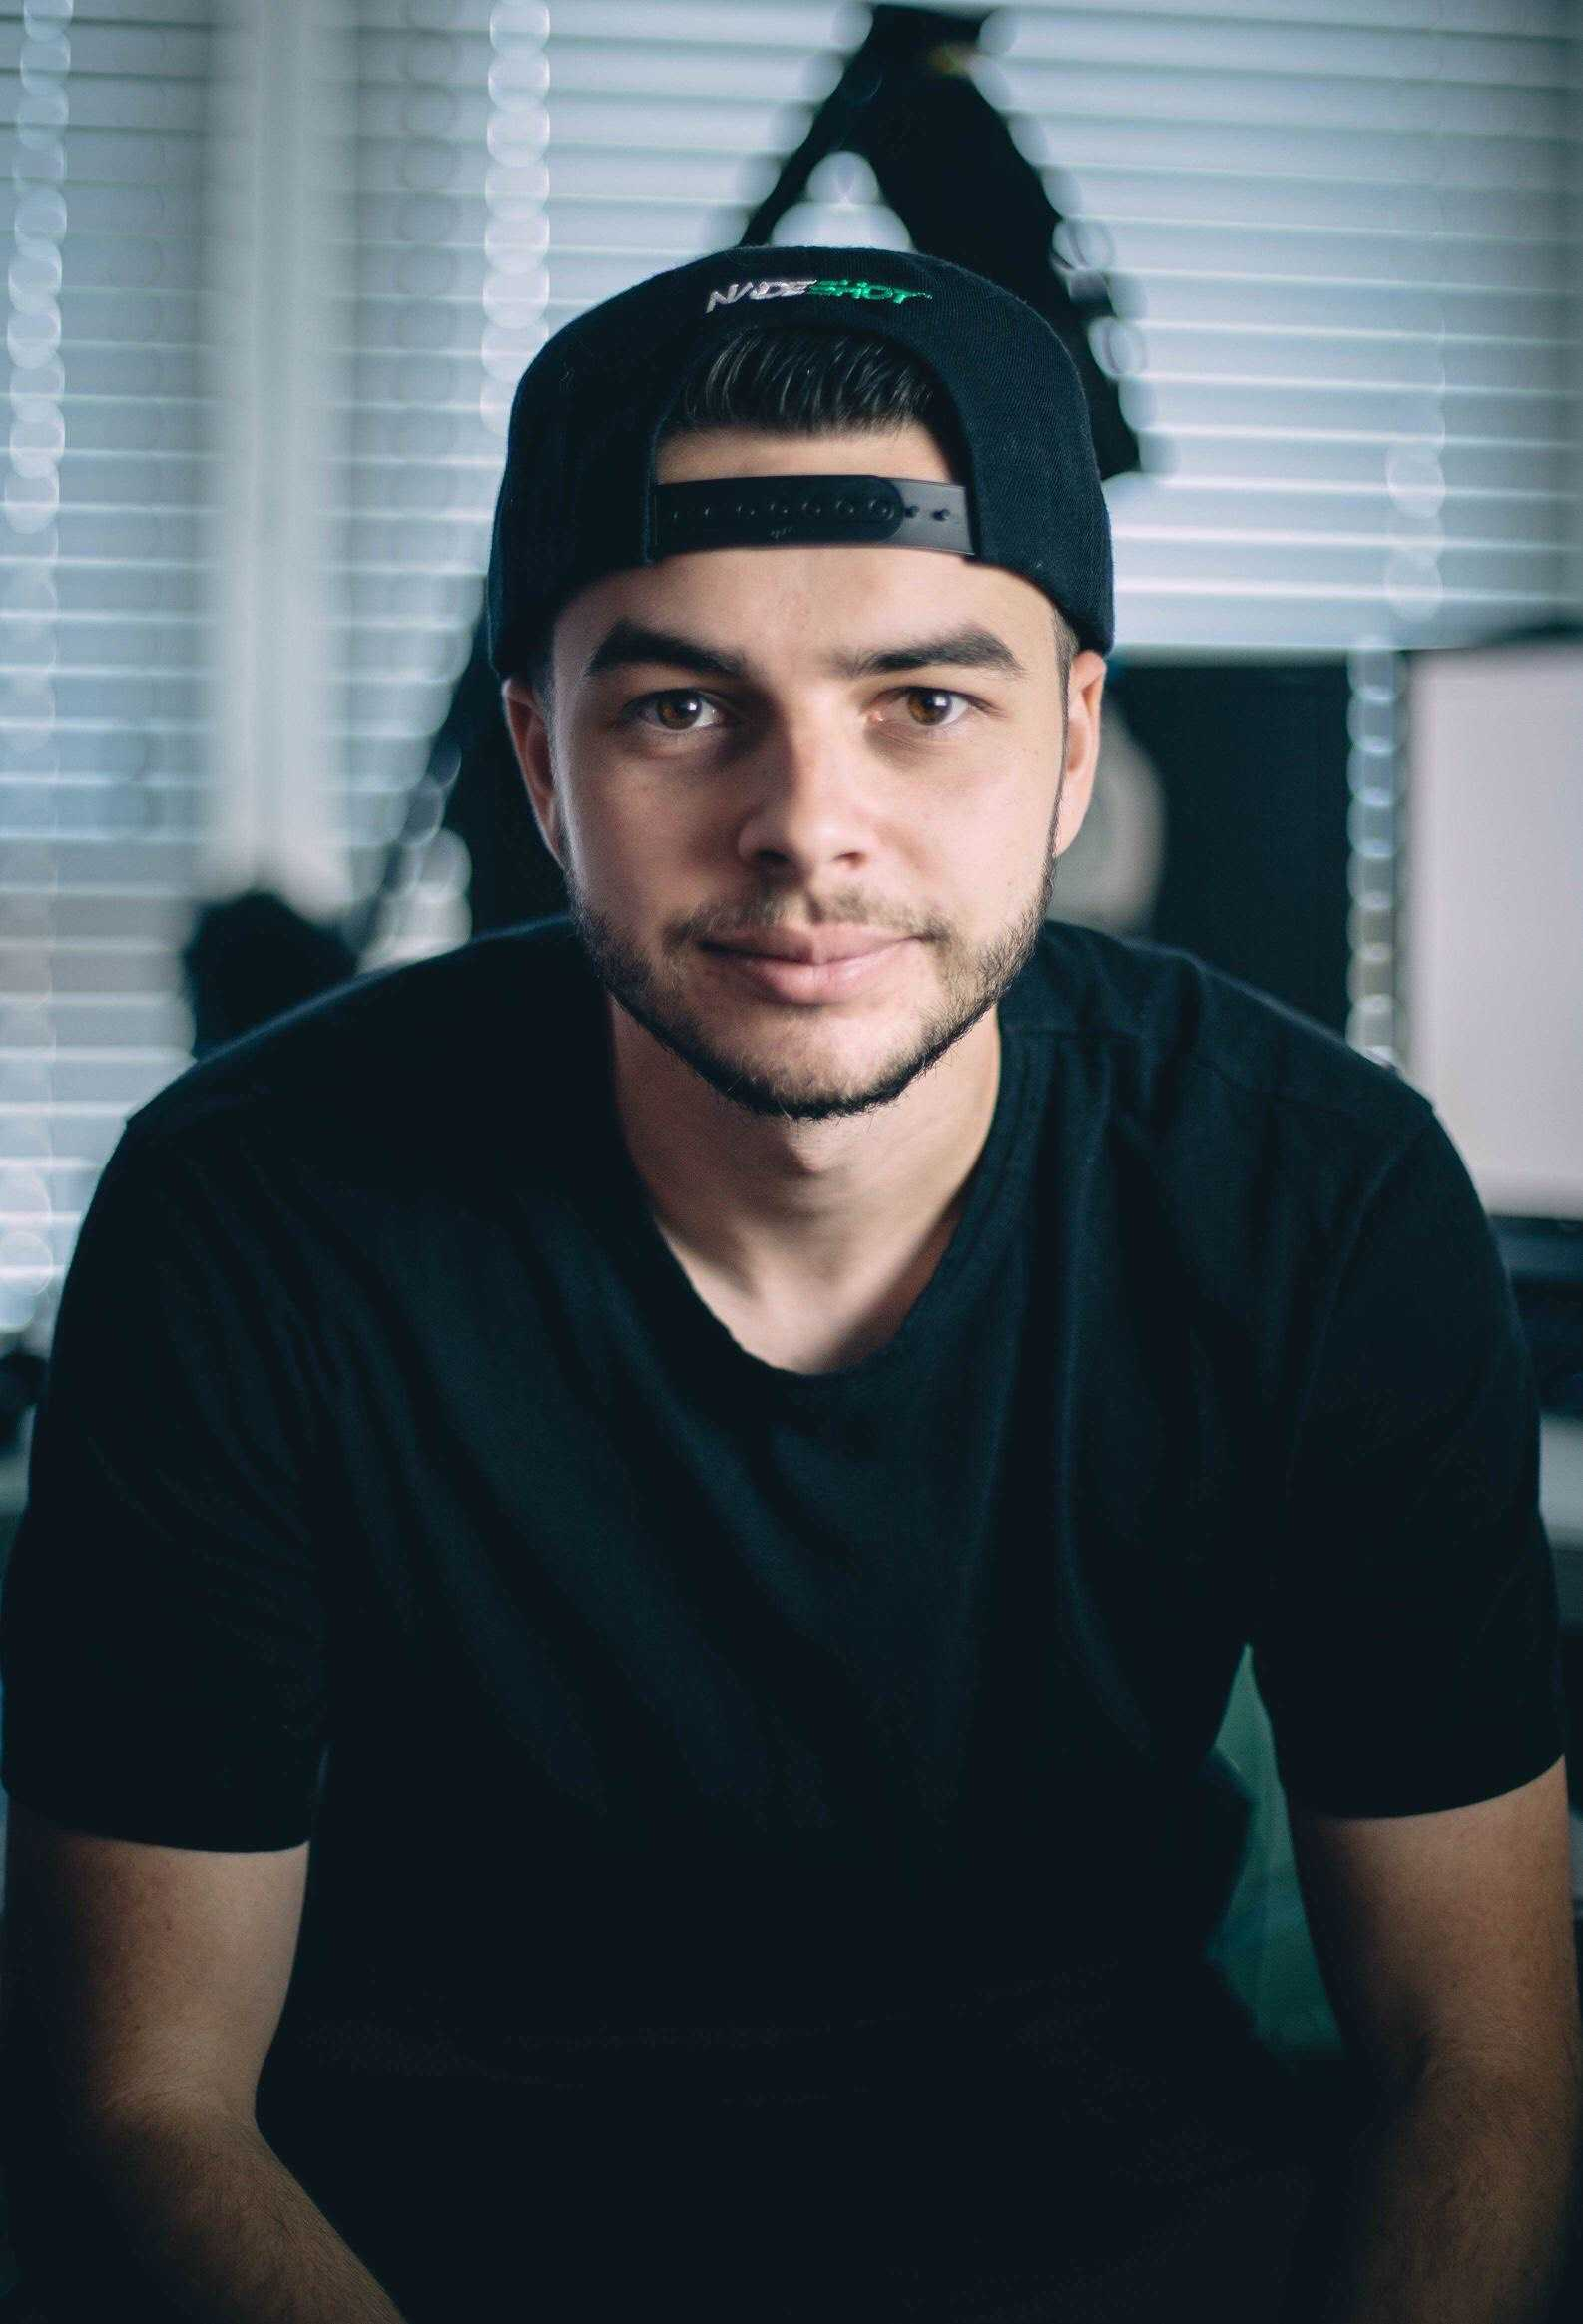 The 28-year old son of father Jeff Haag and mother Christina Haag Nadeshot in 2020 photo. Nadeshot earned a  million dollar salary - leaving the net worth at 2 million in 2020